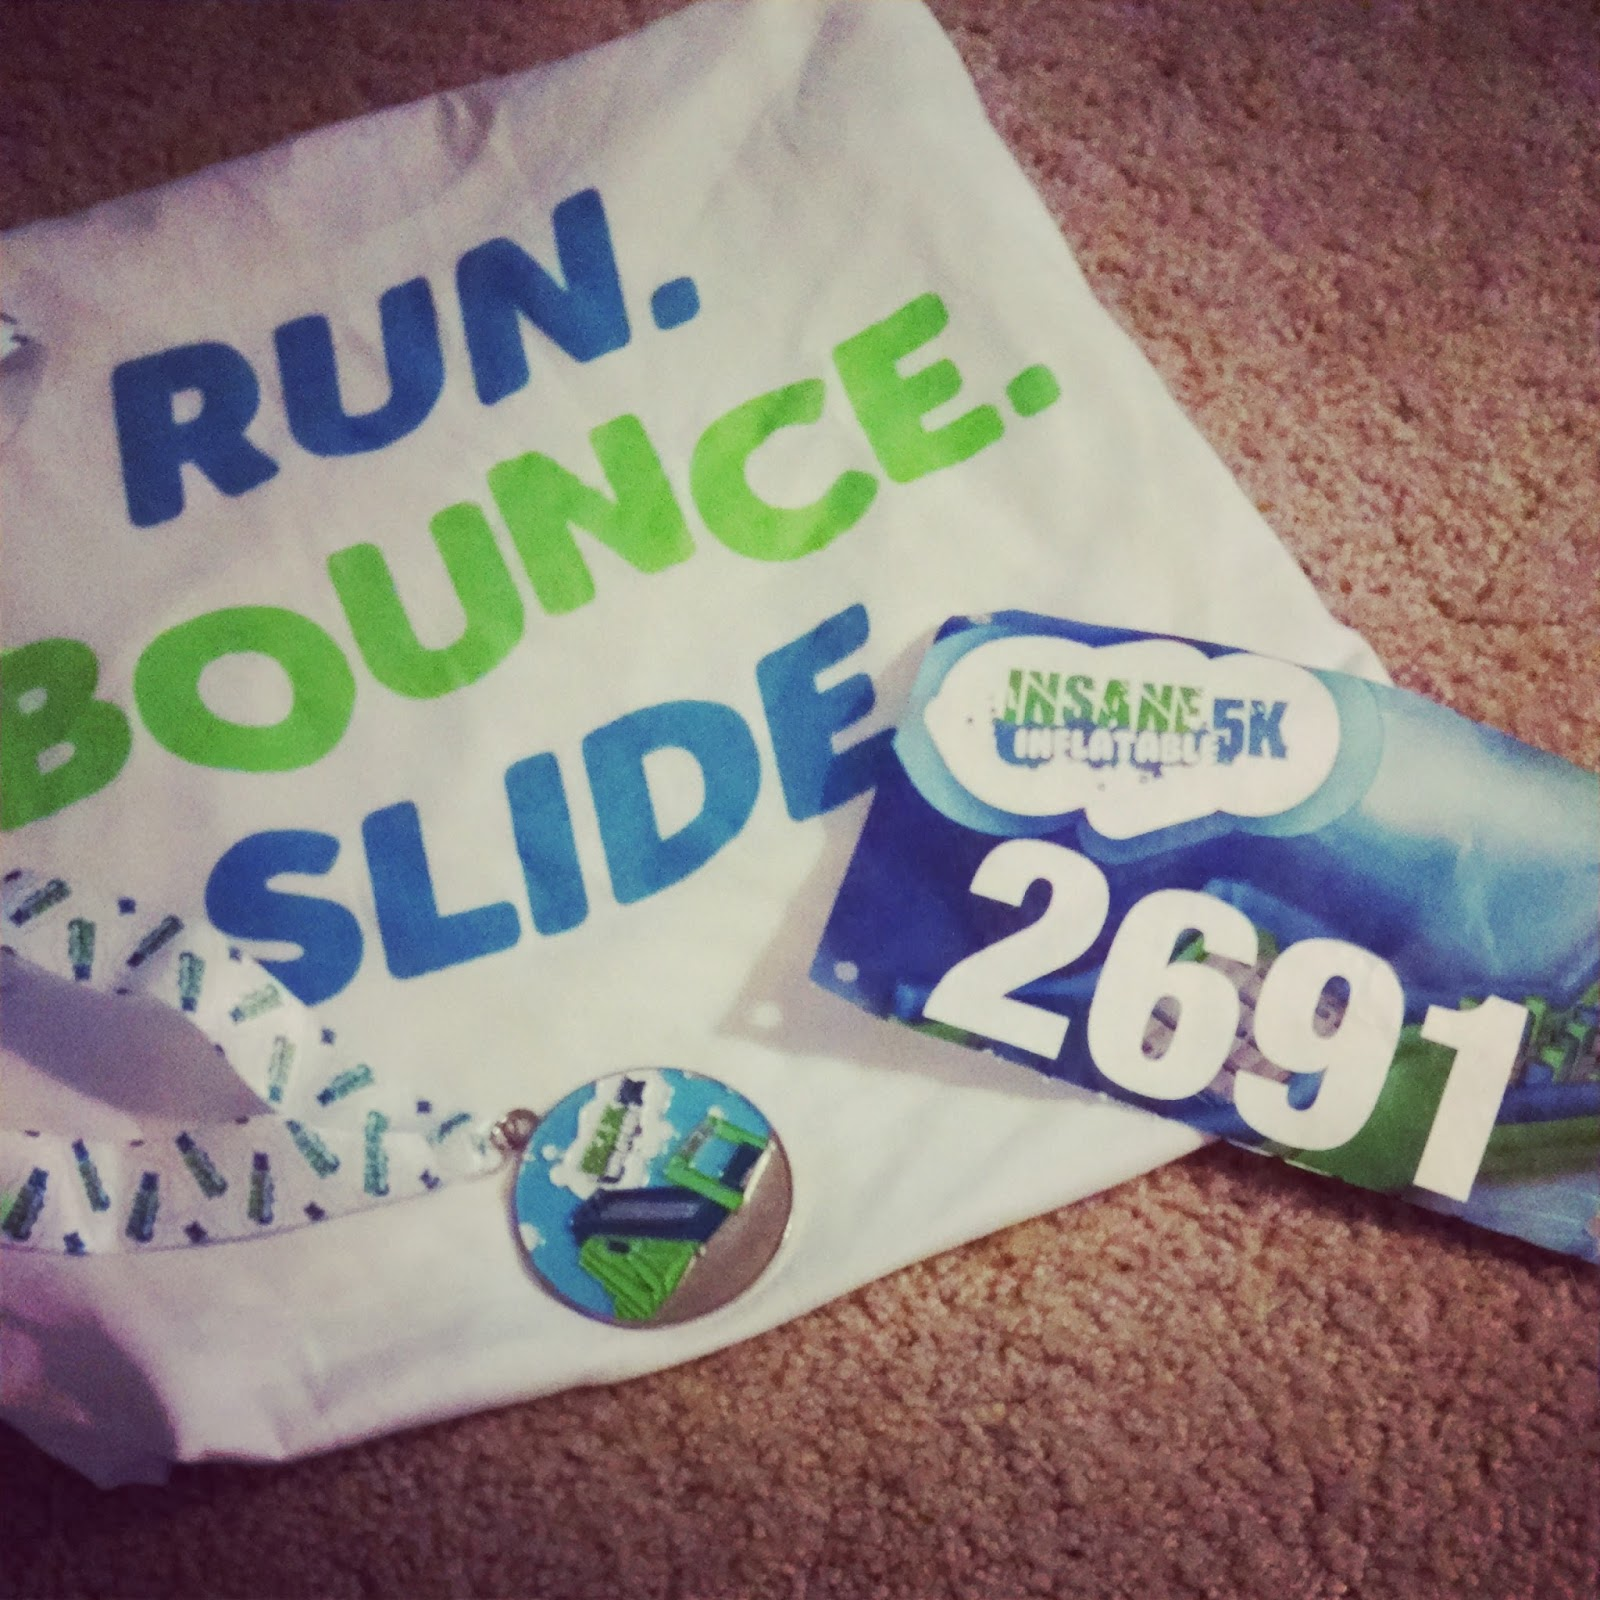 Posted by amanda nyx at 3 52 pm for Insane inflatable 5k shirt